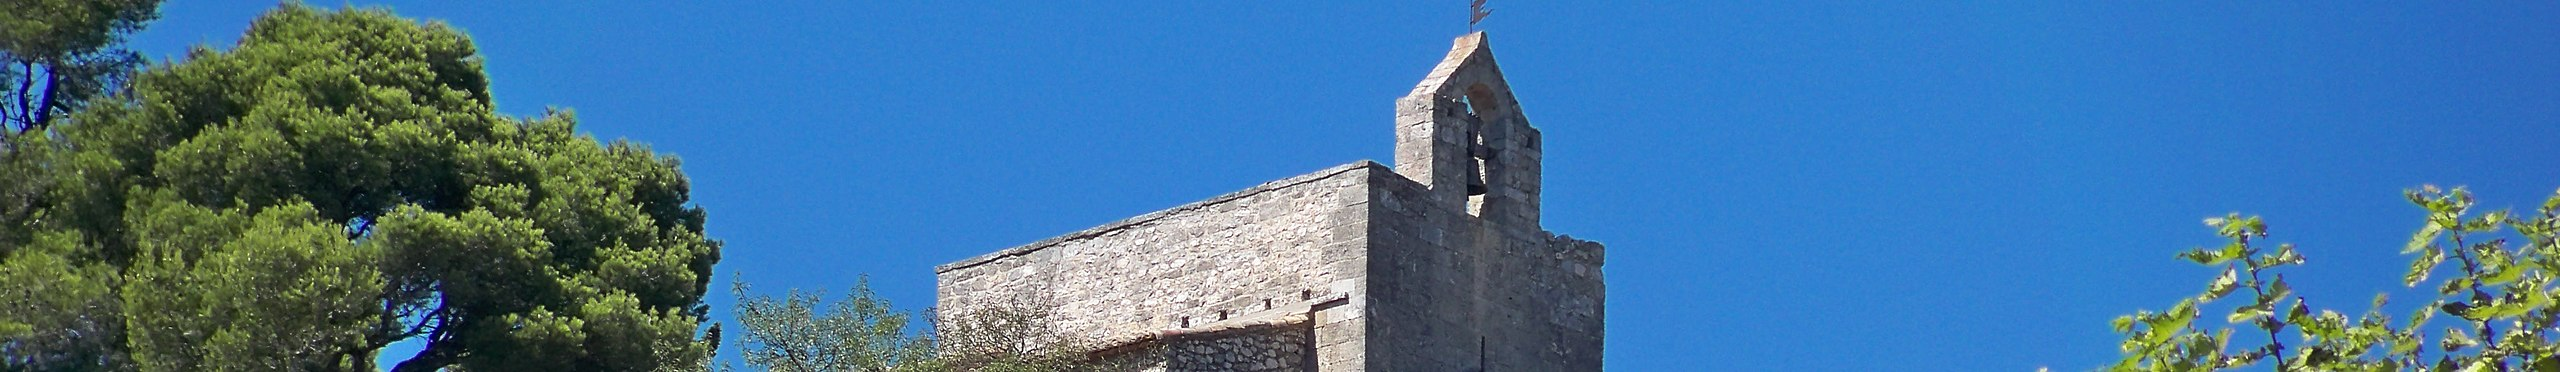 Cavaillon Avignon Bus Cavaillon Travel Guide At Wikivoyage